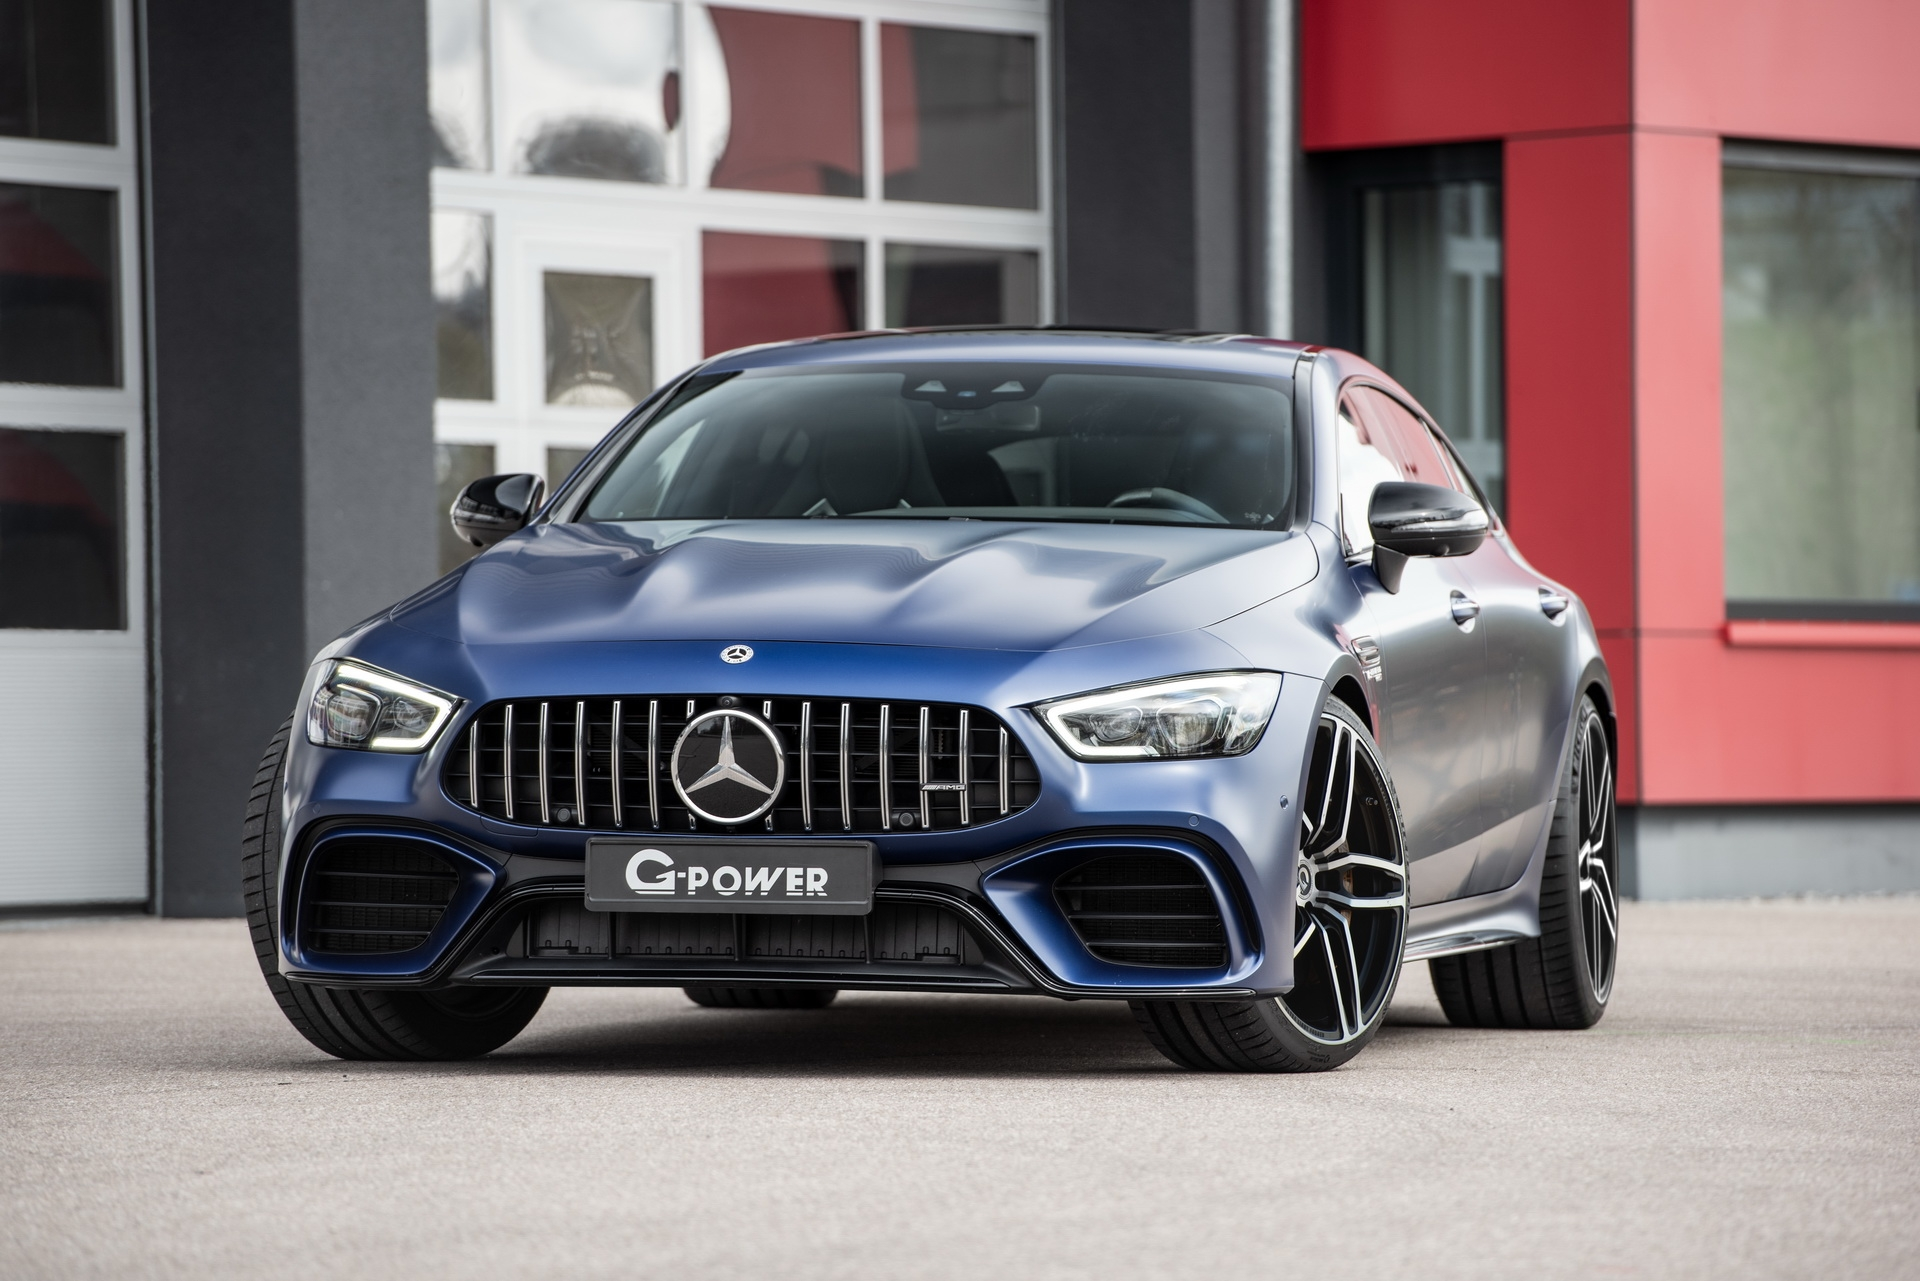 Mercedes-AMG GT 63 Coupé 4 G-Power